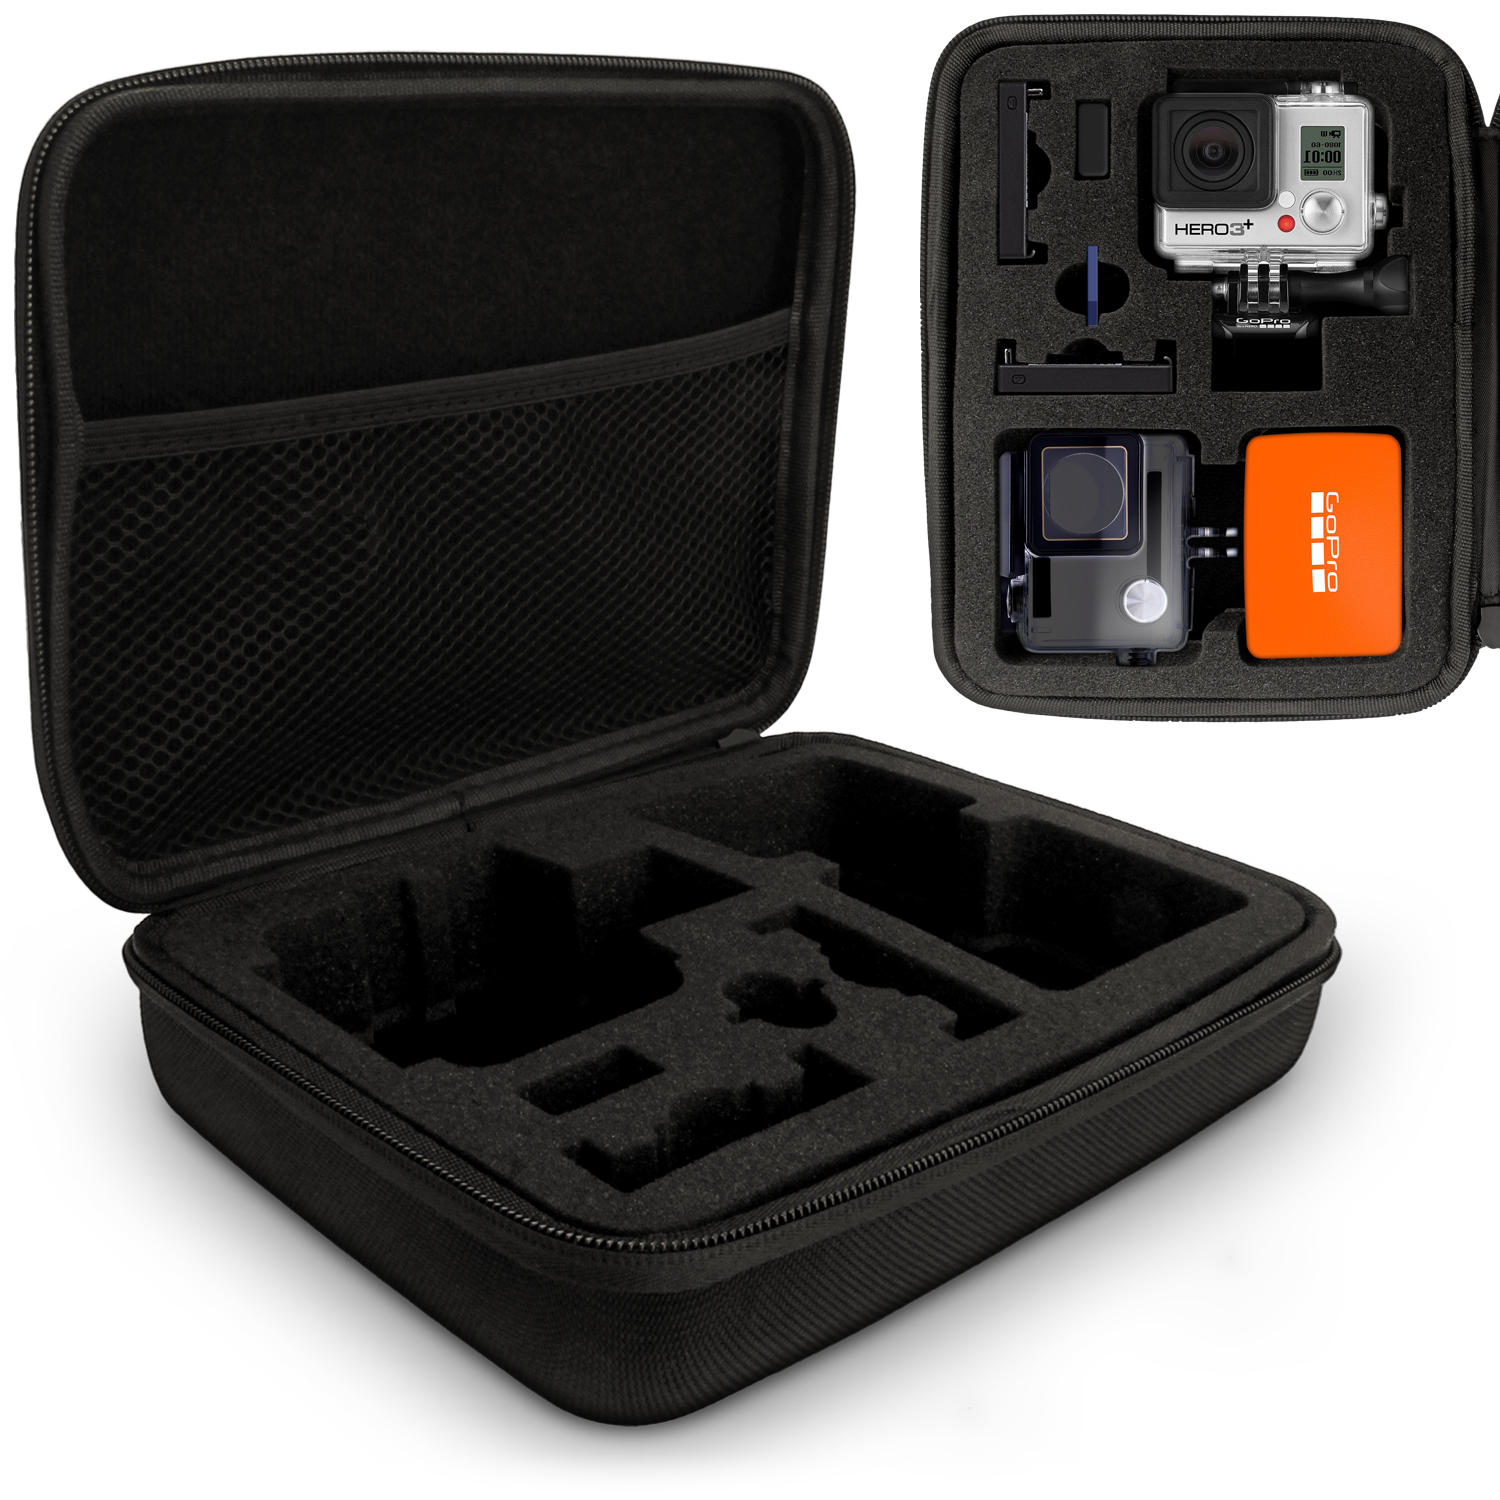 Optix Pro Large EVA Hard Travel Case Cover with Zip Closure & Foam Inserts for  GoPro Hero5 4 3+ 3 2 1 Action Cameras